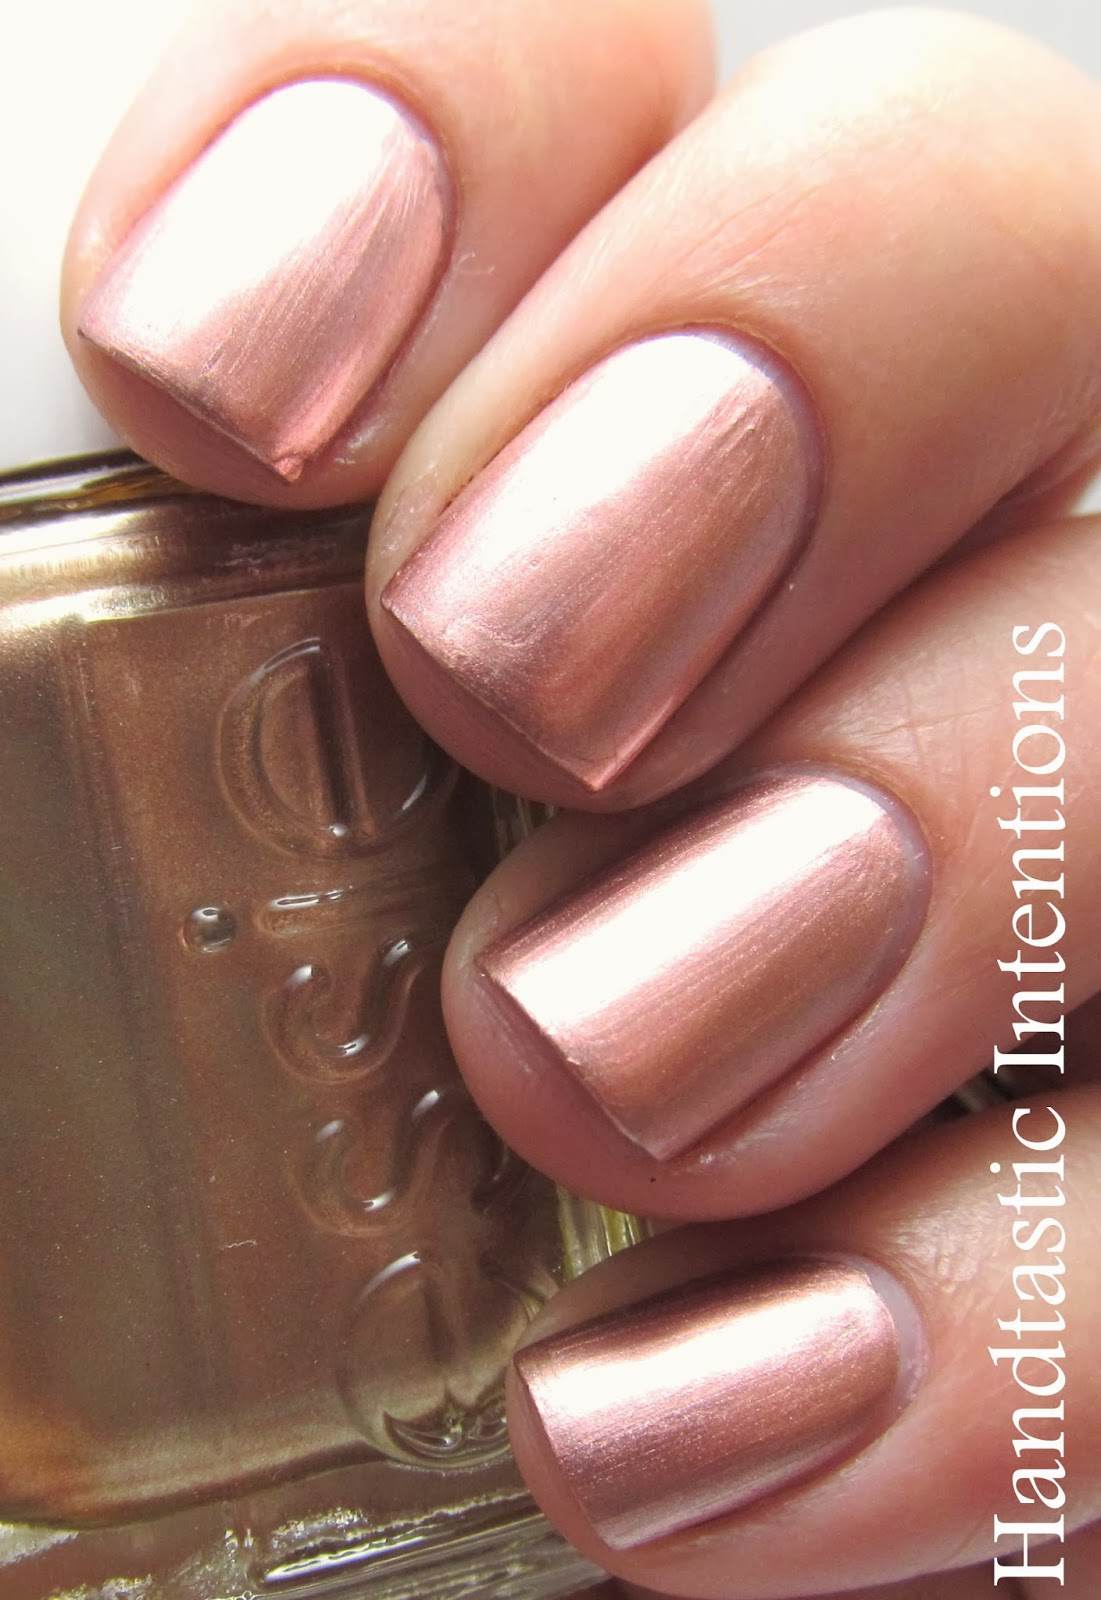 Handtastic Intentions: Swatch and Review of Essie Penny Talk